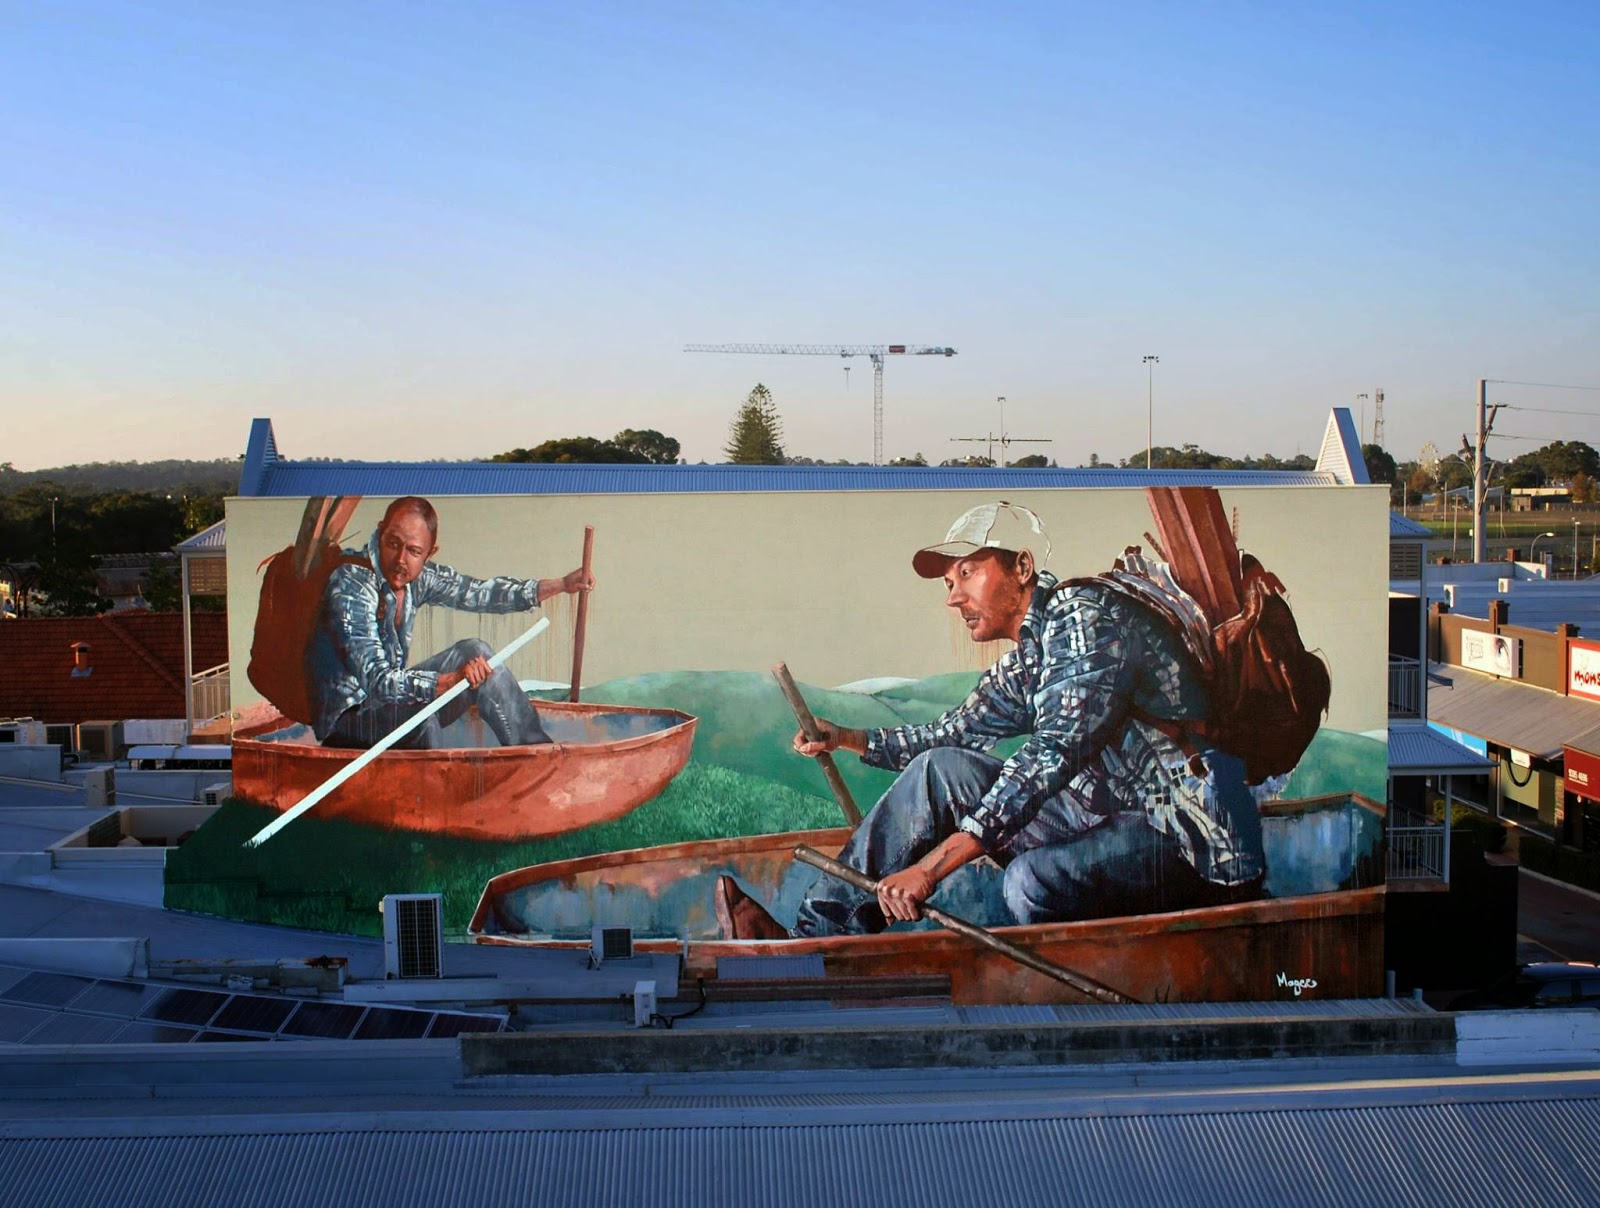 We continue our ongoing coverage of Public '15 in Australia with a new offering from Fintan Magee to the streets of Perth.